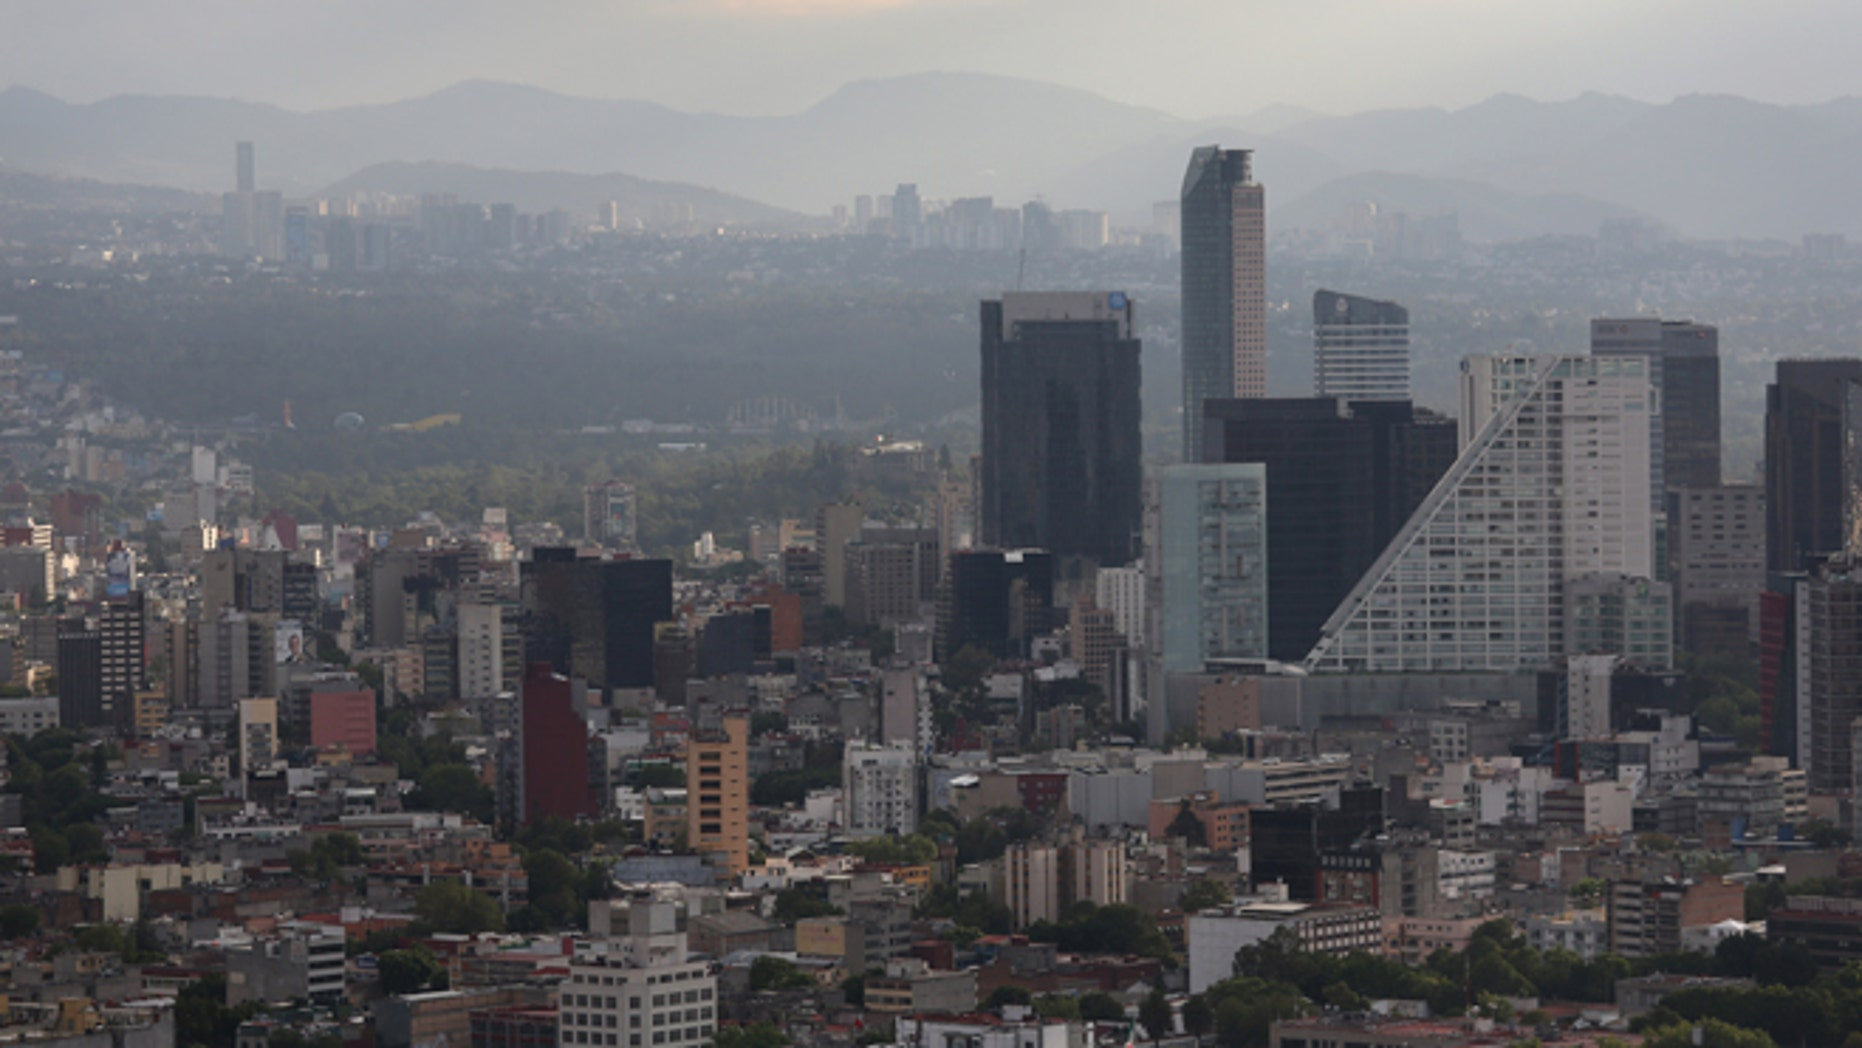 MEXICO CITY, MEXICO - JUNE 26:  A Mexico City skyline is seen through the haze from the Latino Tower on June 26, 2012 in Mexico City, Mexico. Mexicans go to the polls to elect a new president this Sunday, July 1.  (Photo by John Moore/Getty Images)